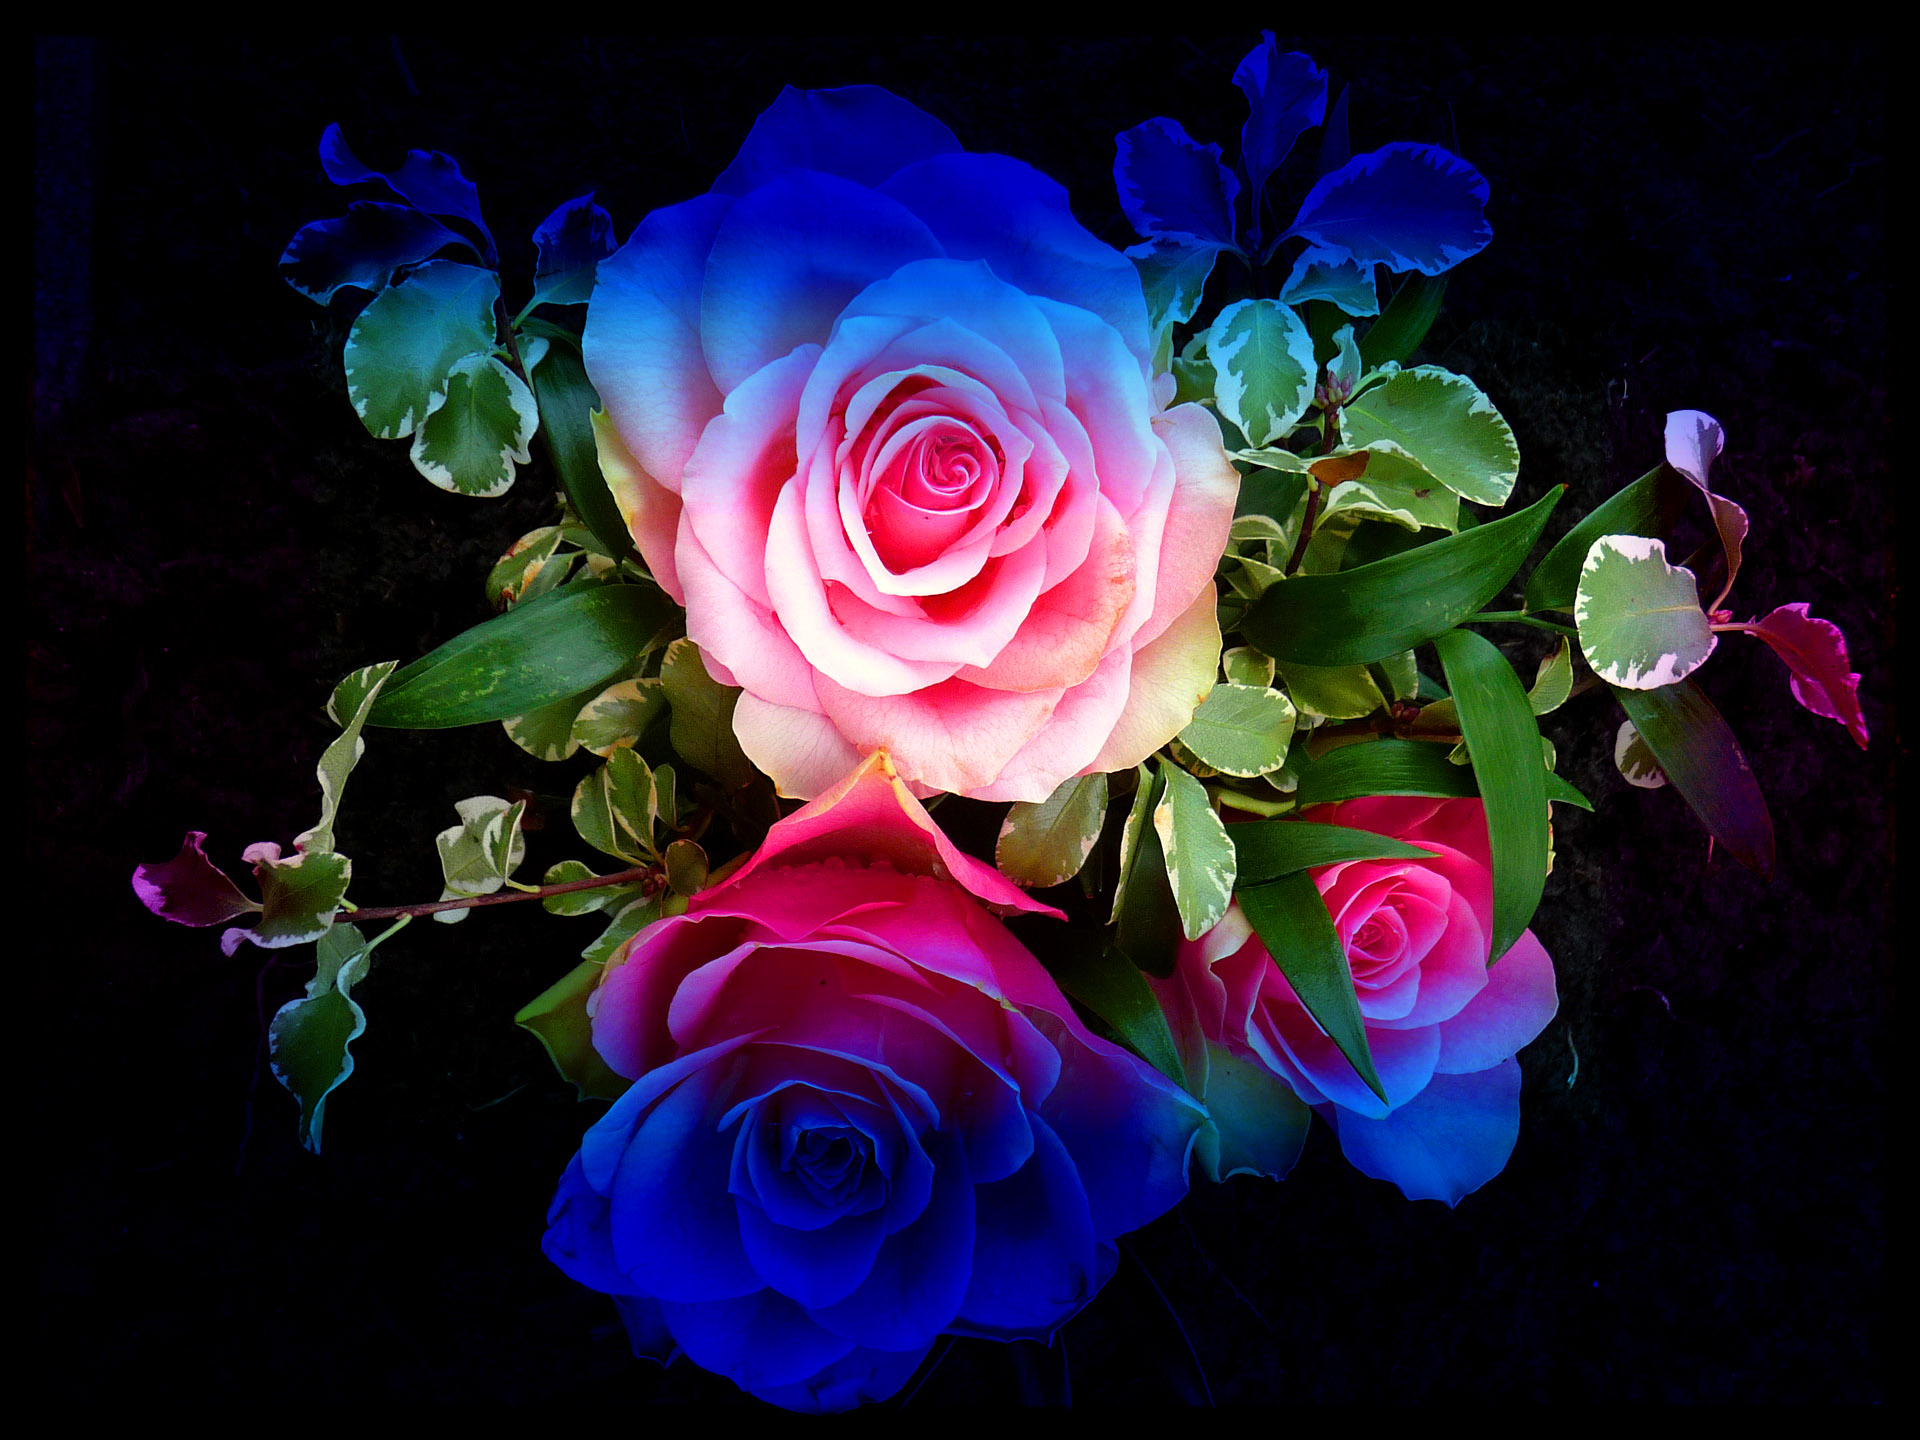 Wallpapers Love Quotes Free Download Zedge Colourful Roses Wallpaper High Definition High Quality